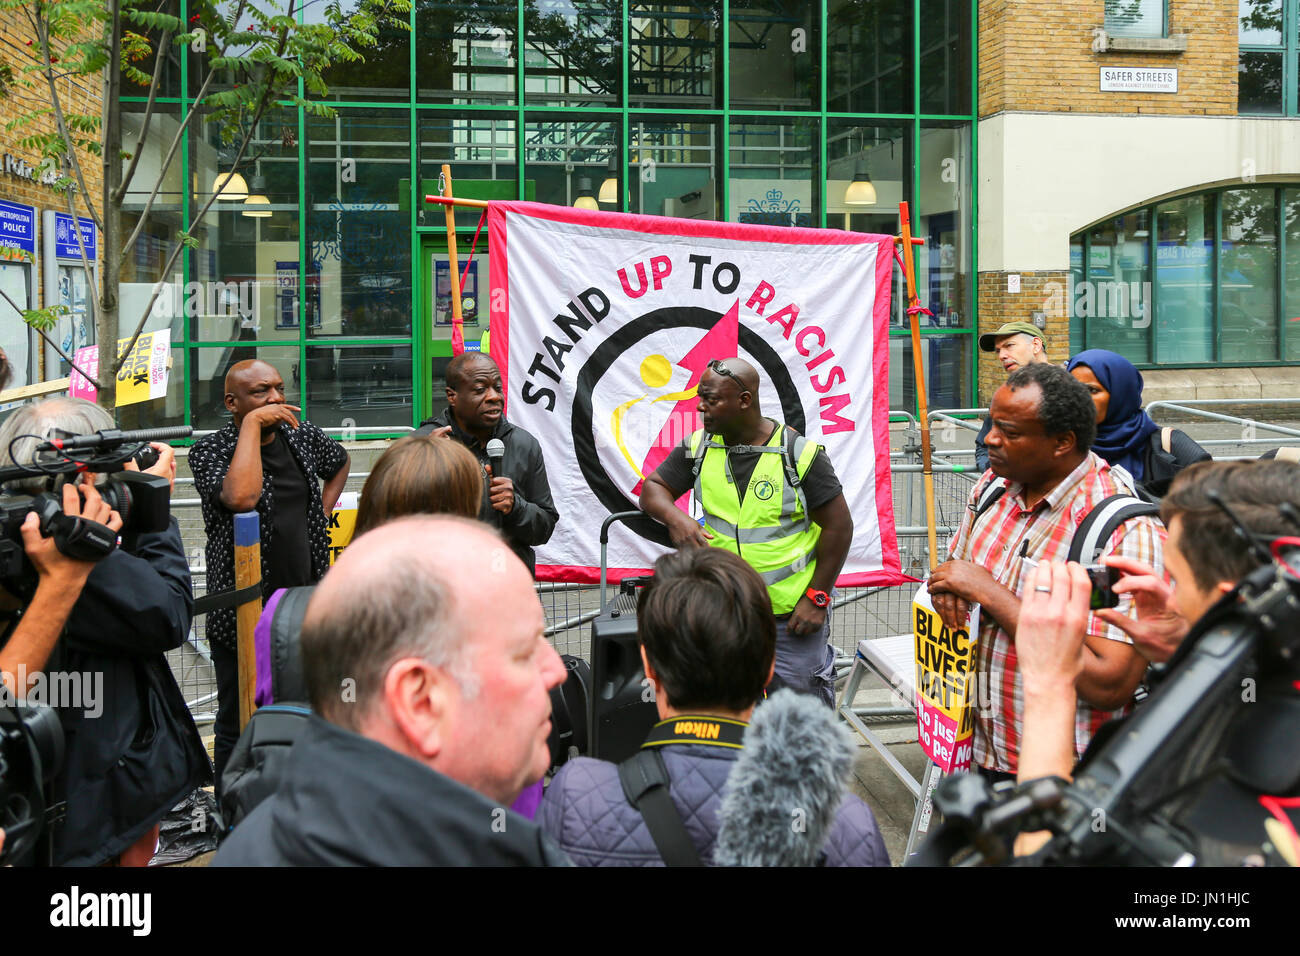 London, UK. 29th Jul, 2017. Protest and vigil for Rashan Charles outside Stoke Newington police station who died after being chased and arrested by police. Penelope Barritt/Alamy Live News - Stock Image